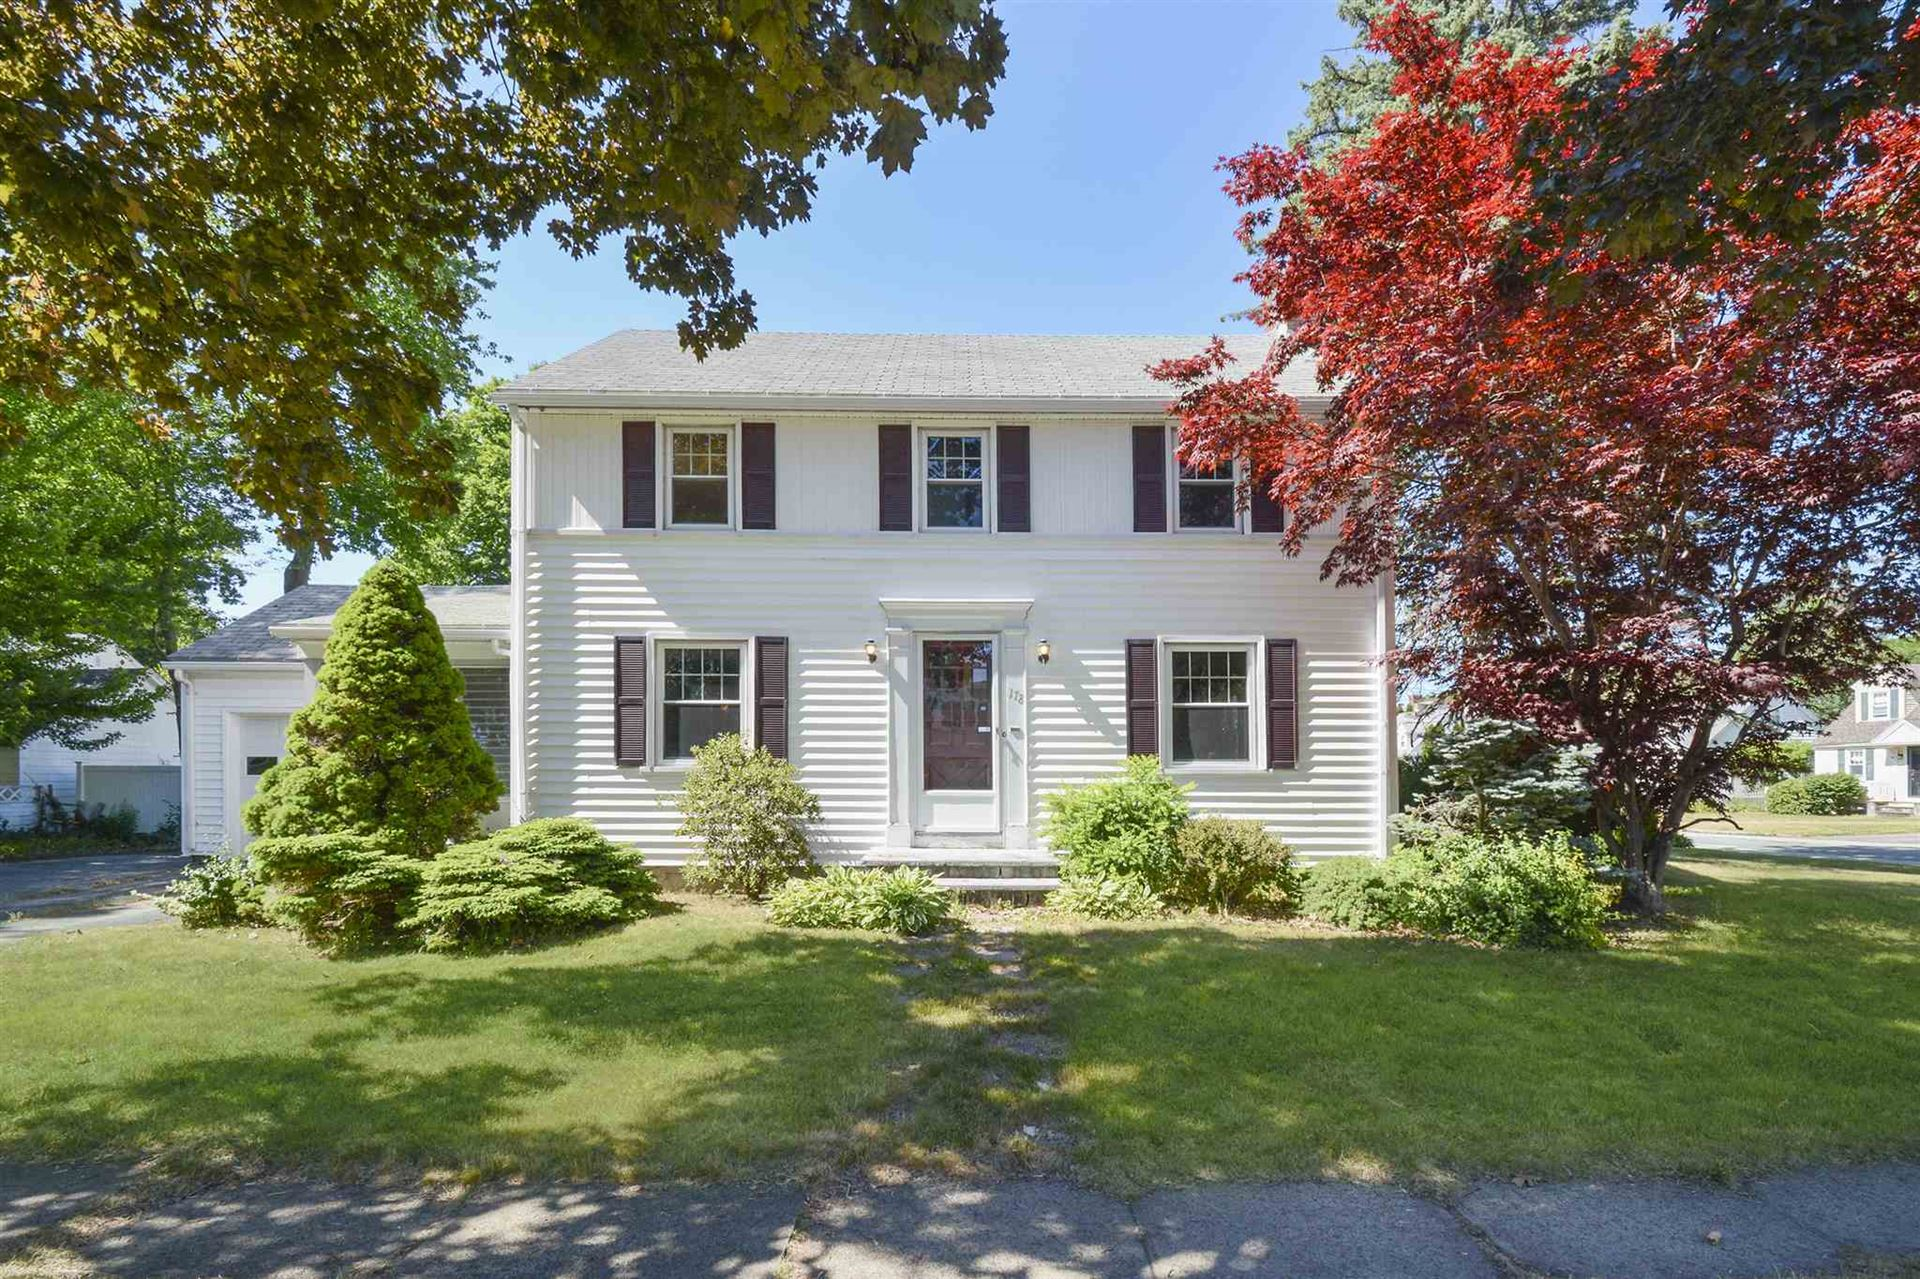 178 North Street, Manchester, NH 03104 - MLS#: 4821090